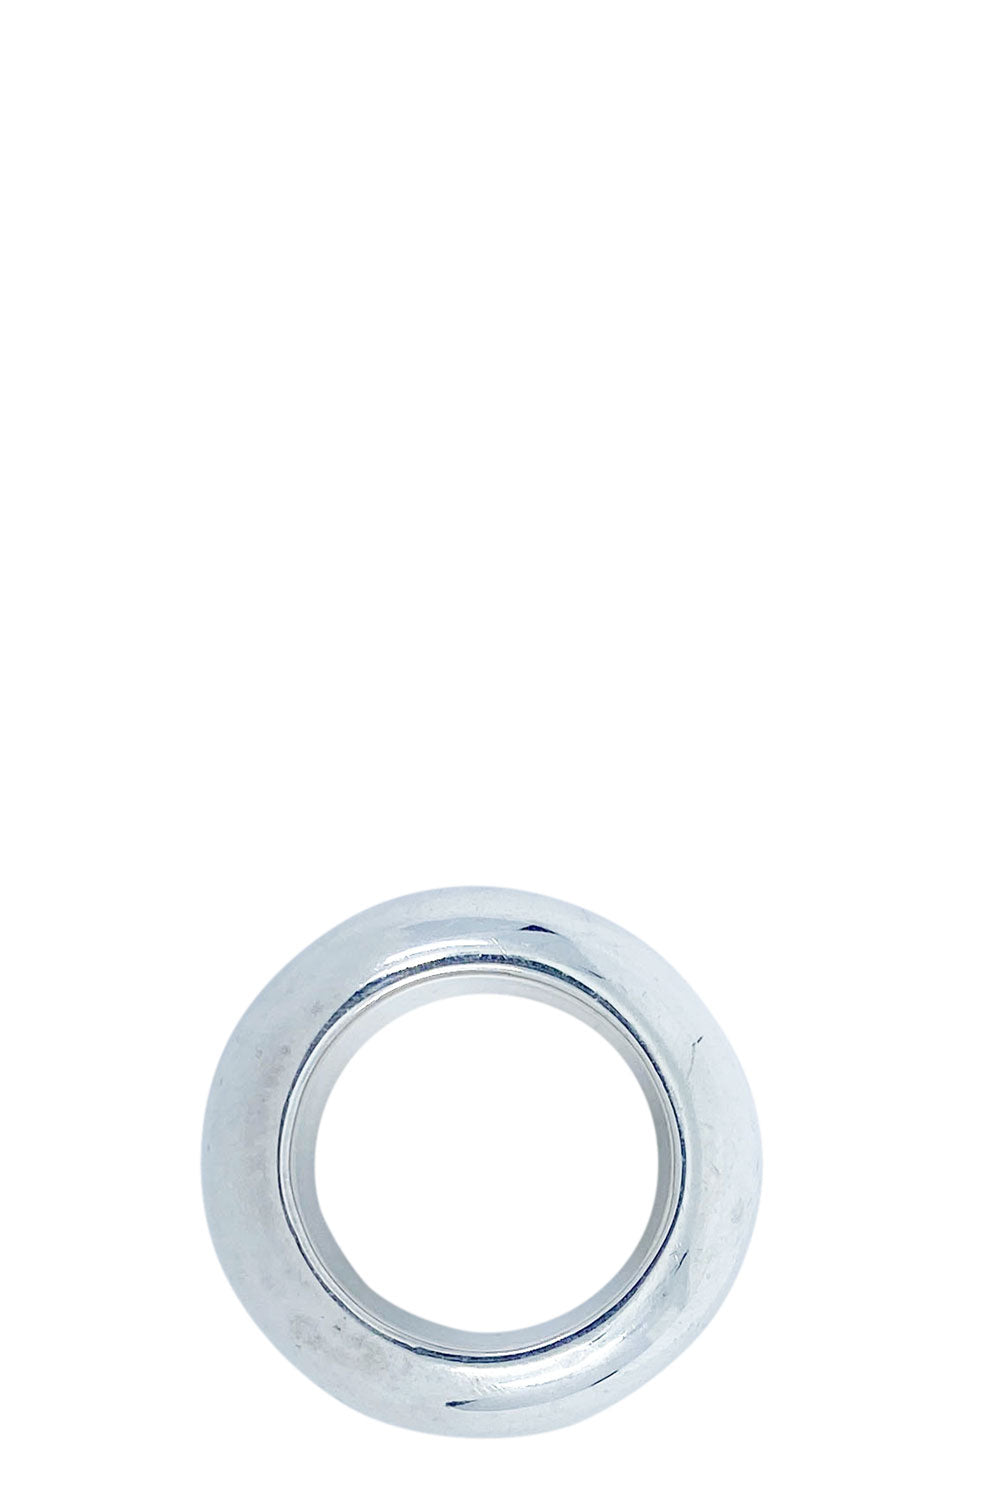 CHANEL Ring 925 Silver